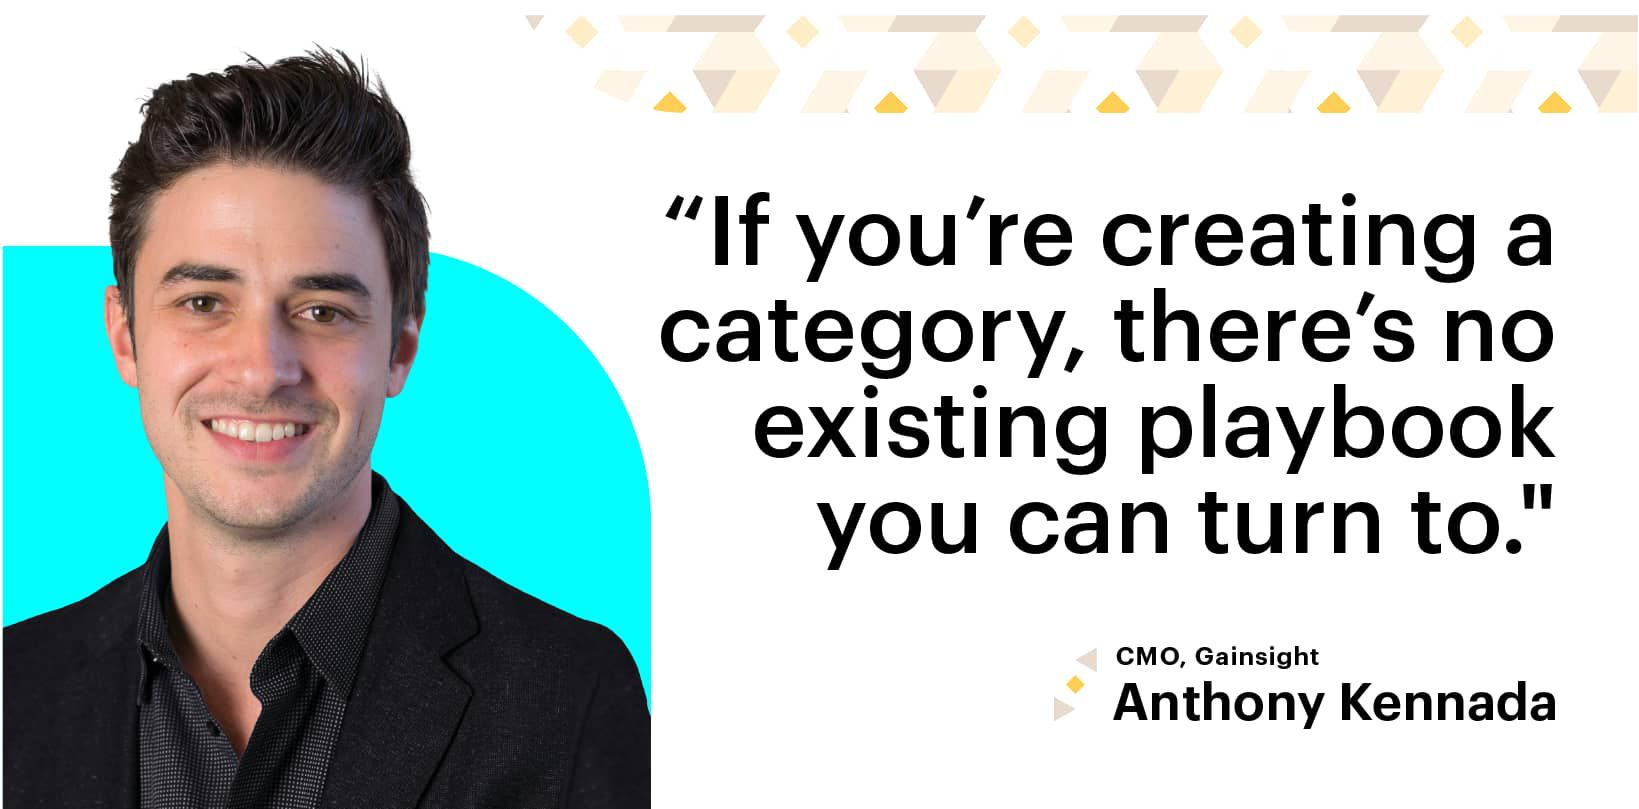 """If you're creating a category, there's no existing playbook you can turn to."" CMO, Gainsight, Anthony Kennada"